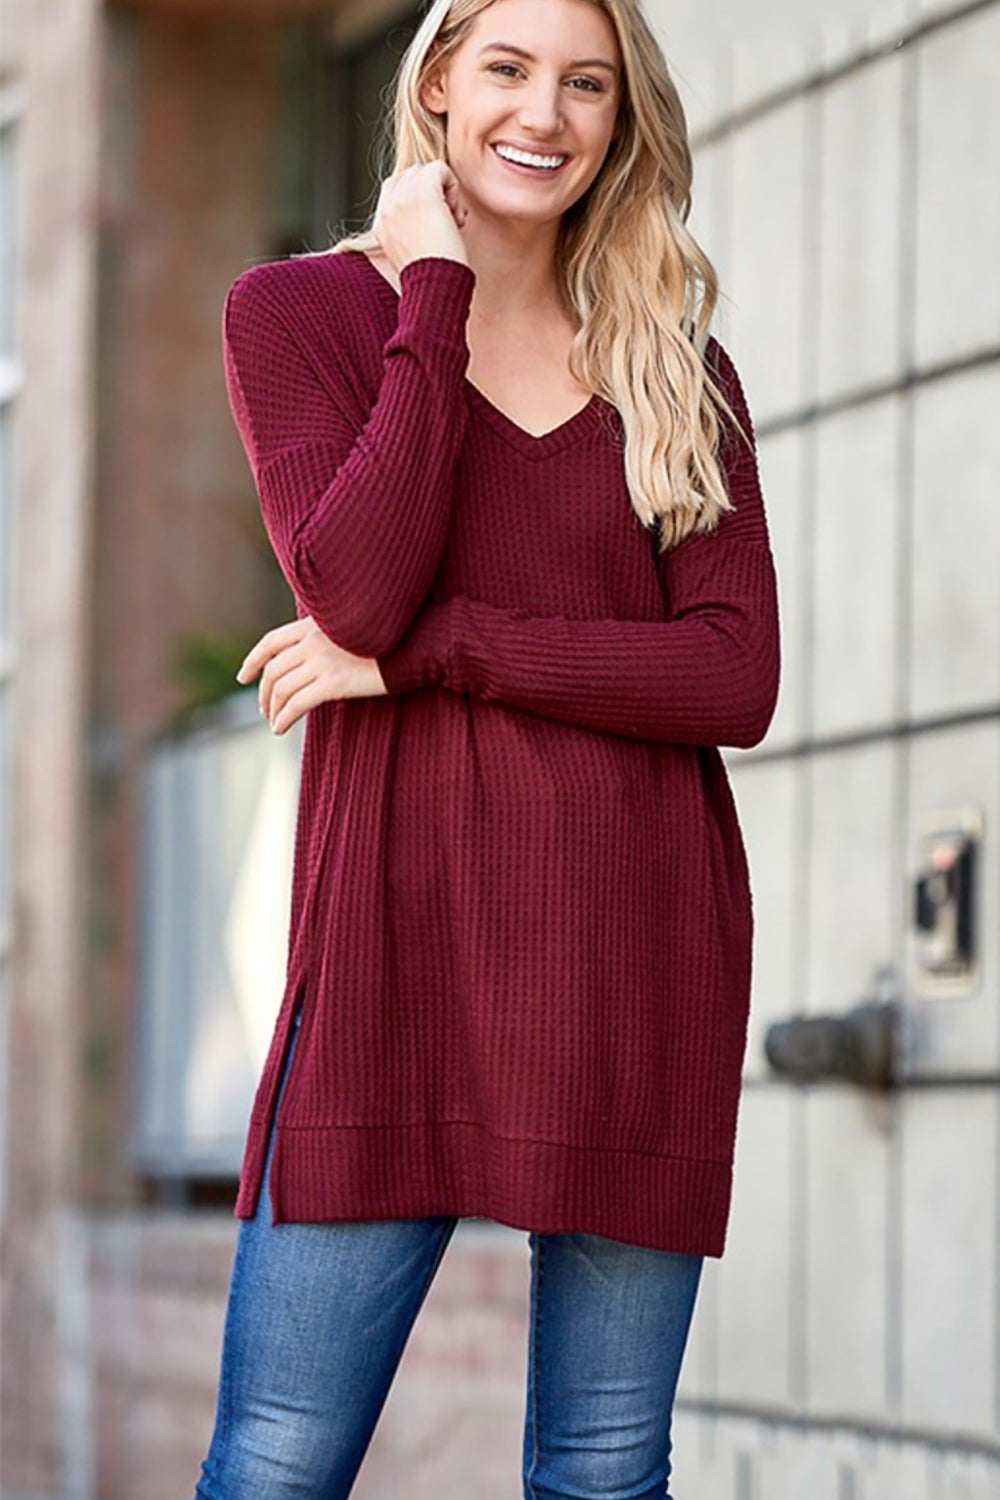 BRUSHED THERMAL WAFFLE LONG SLEEVE V-NECK SWEATER  - Wine - Shop Tops For Women Now At Kendry Collection Boutique